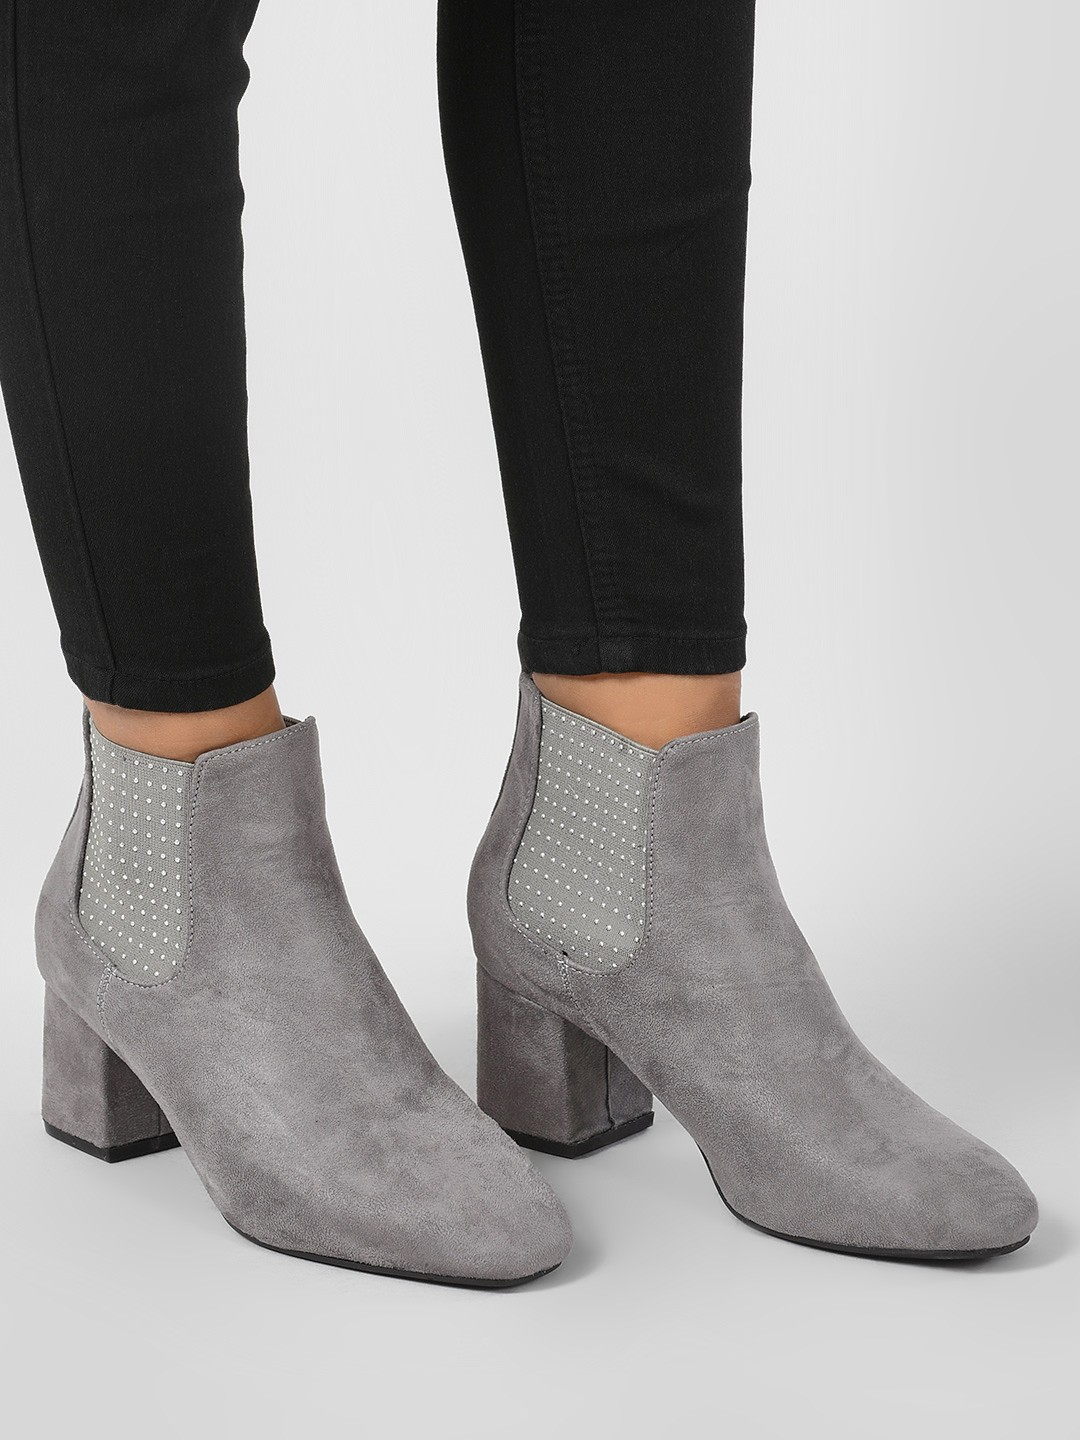 Intoto Grey Studded Elastic Chelsea Boots 1